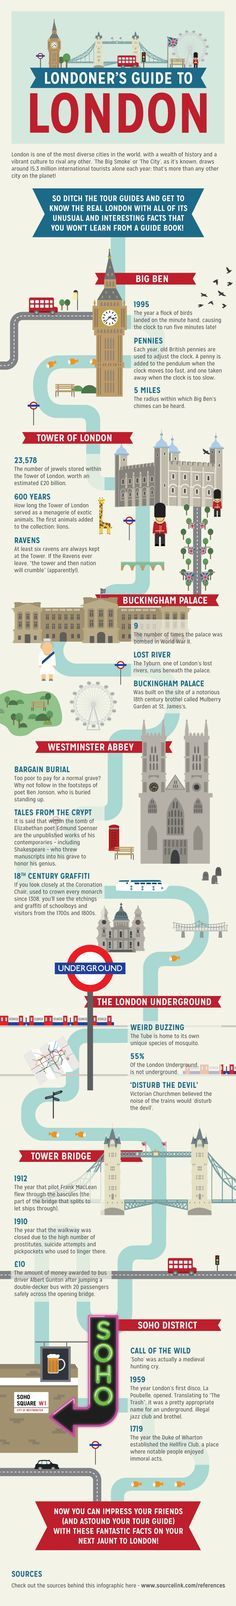 Infographic-londoners-guide-to-london